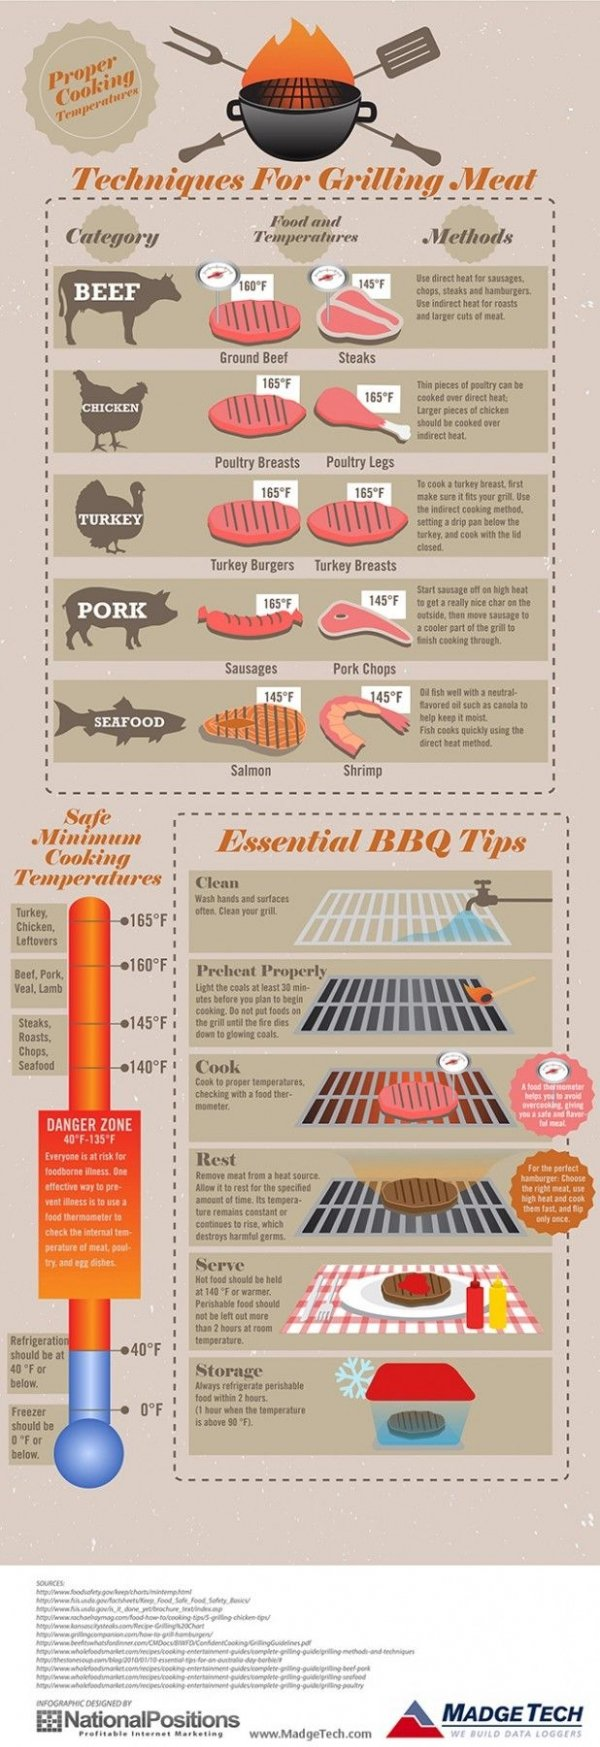 How to Grill Meat